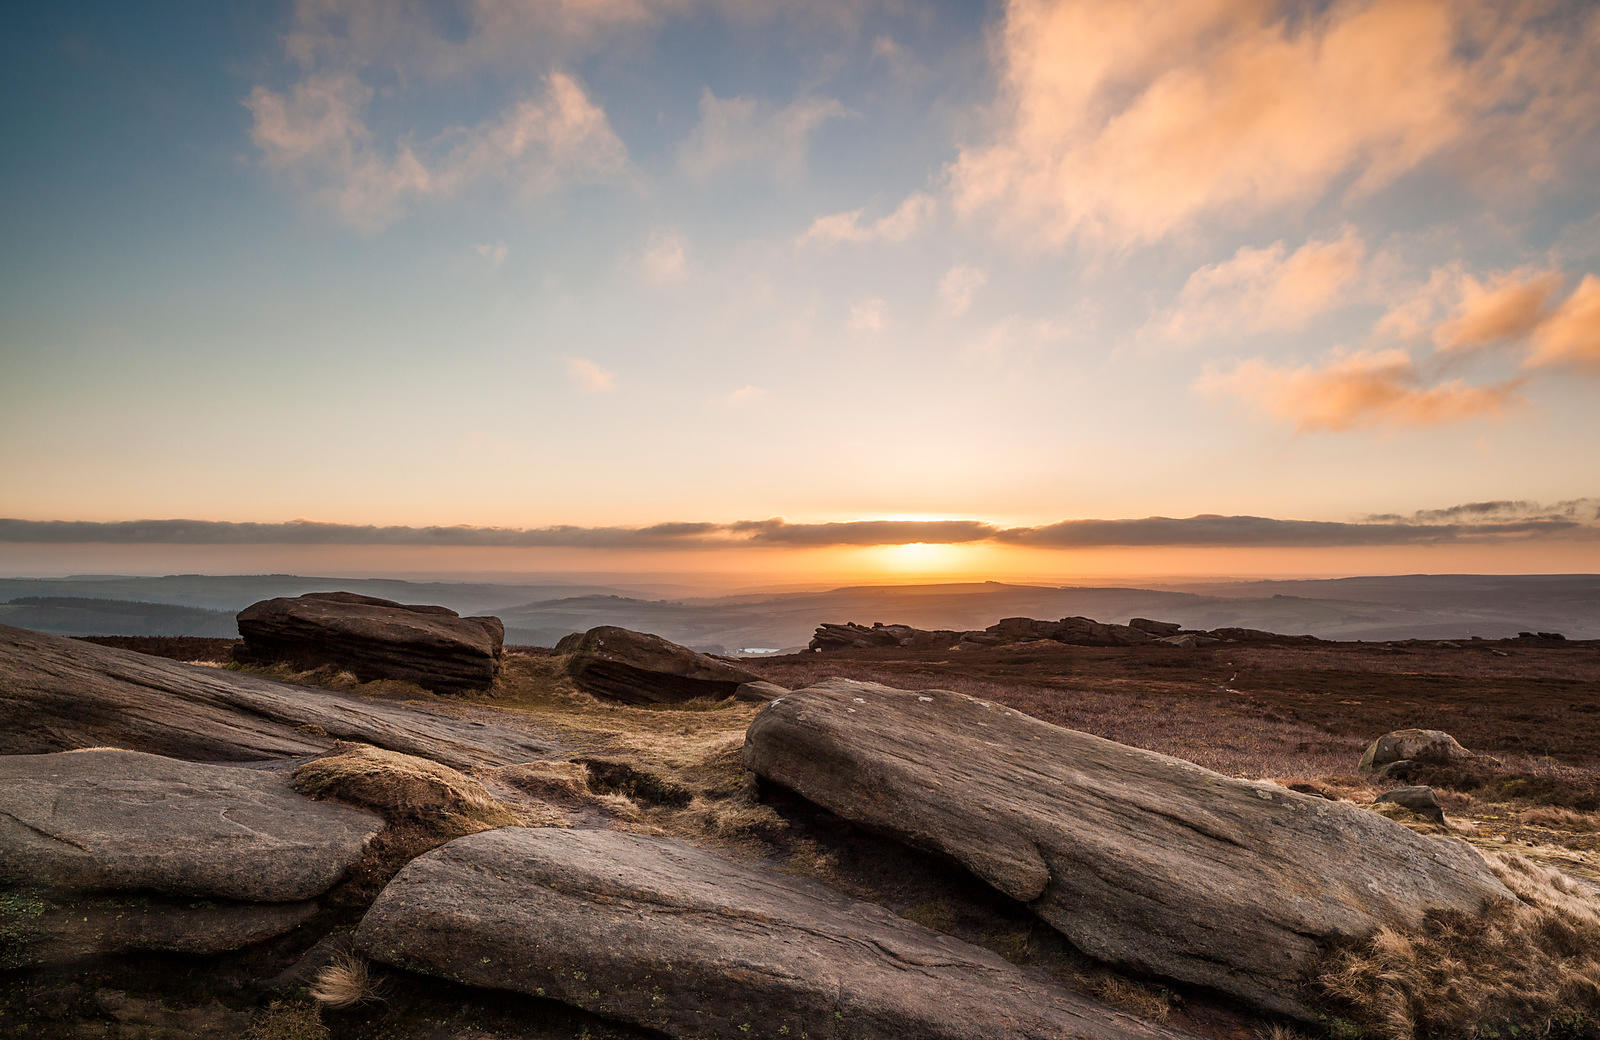 Sunrise on Derwent Edge